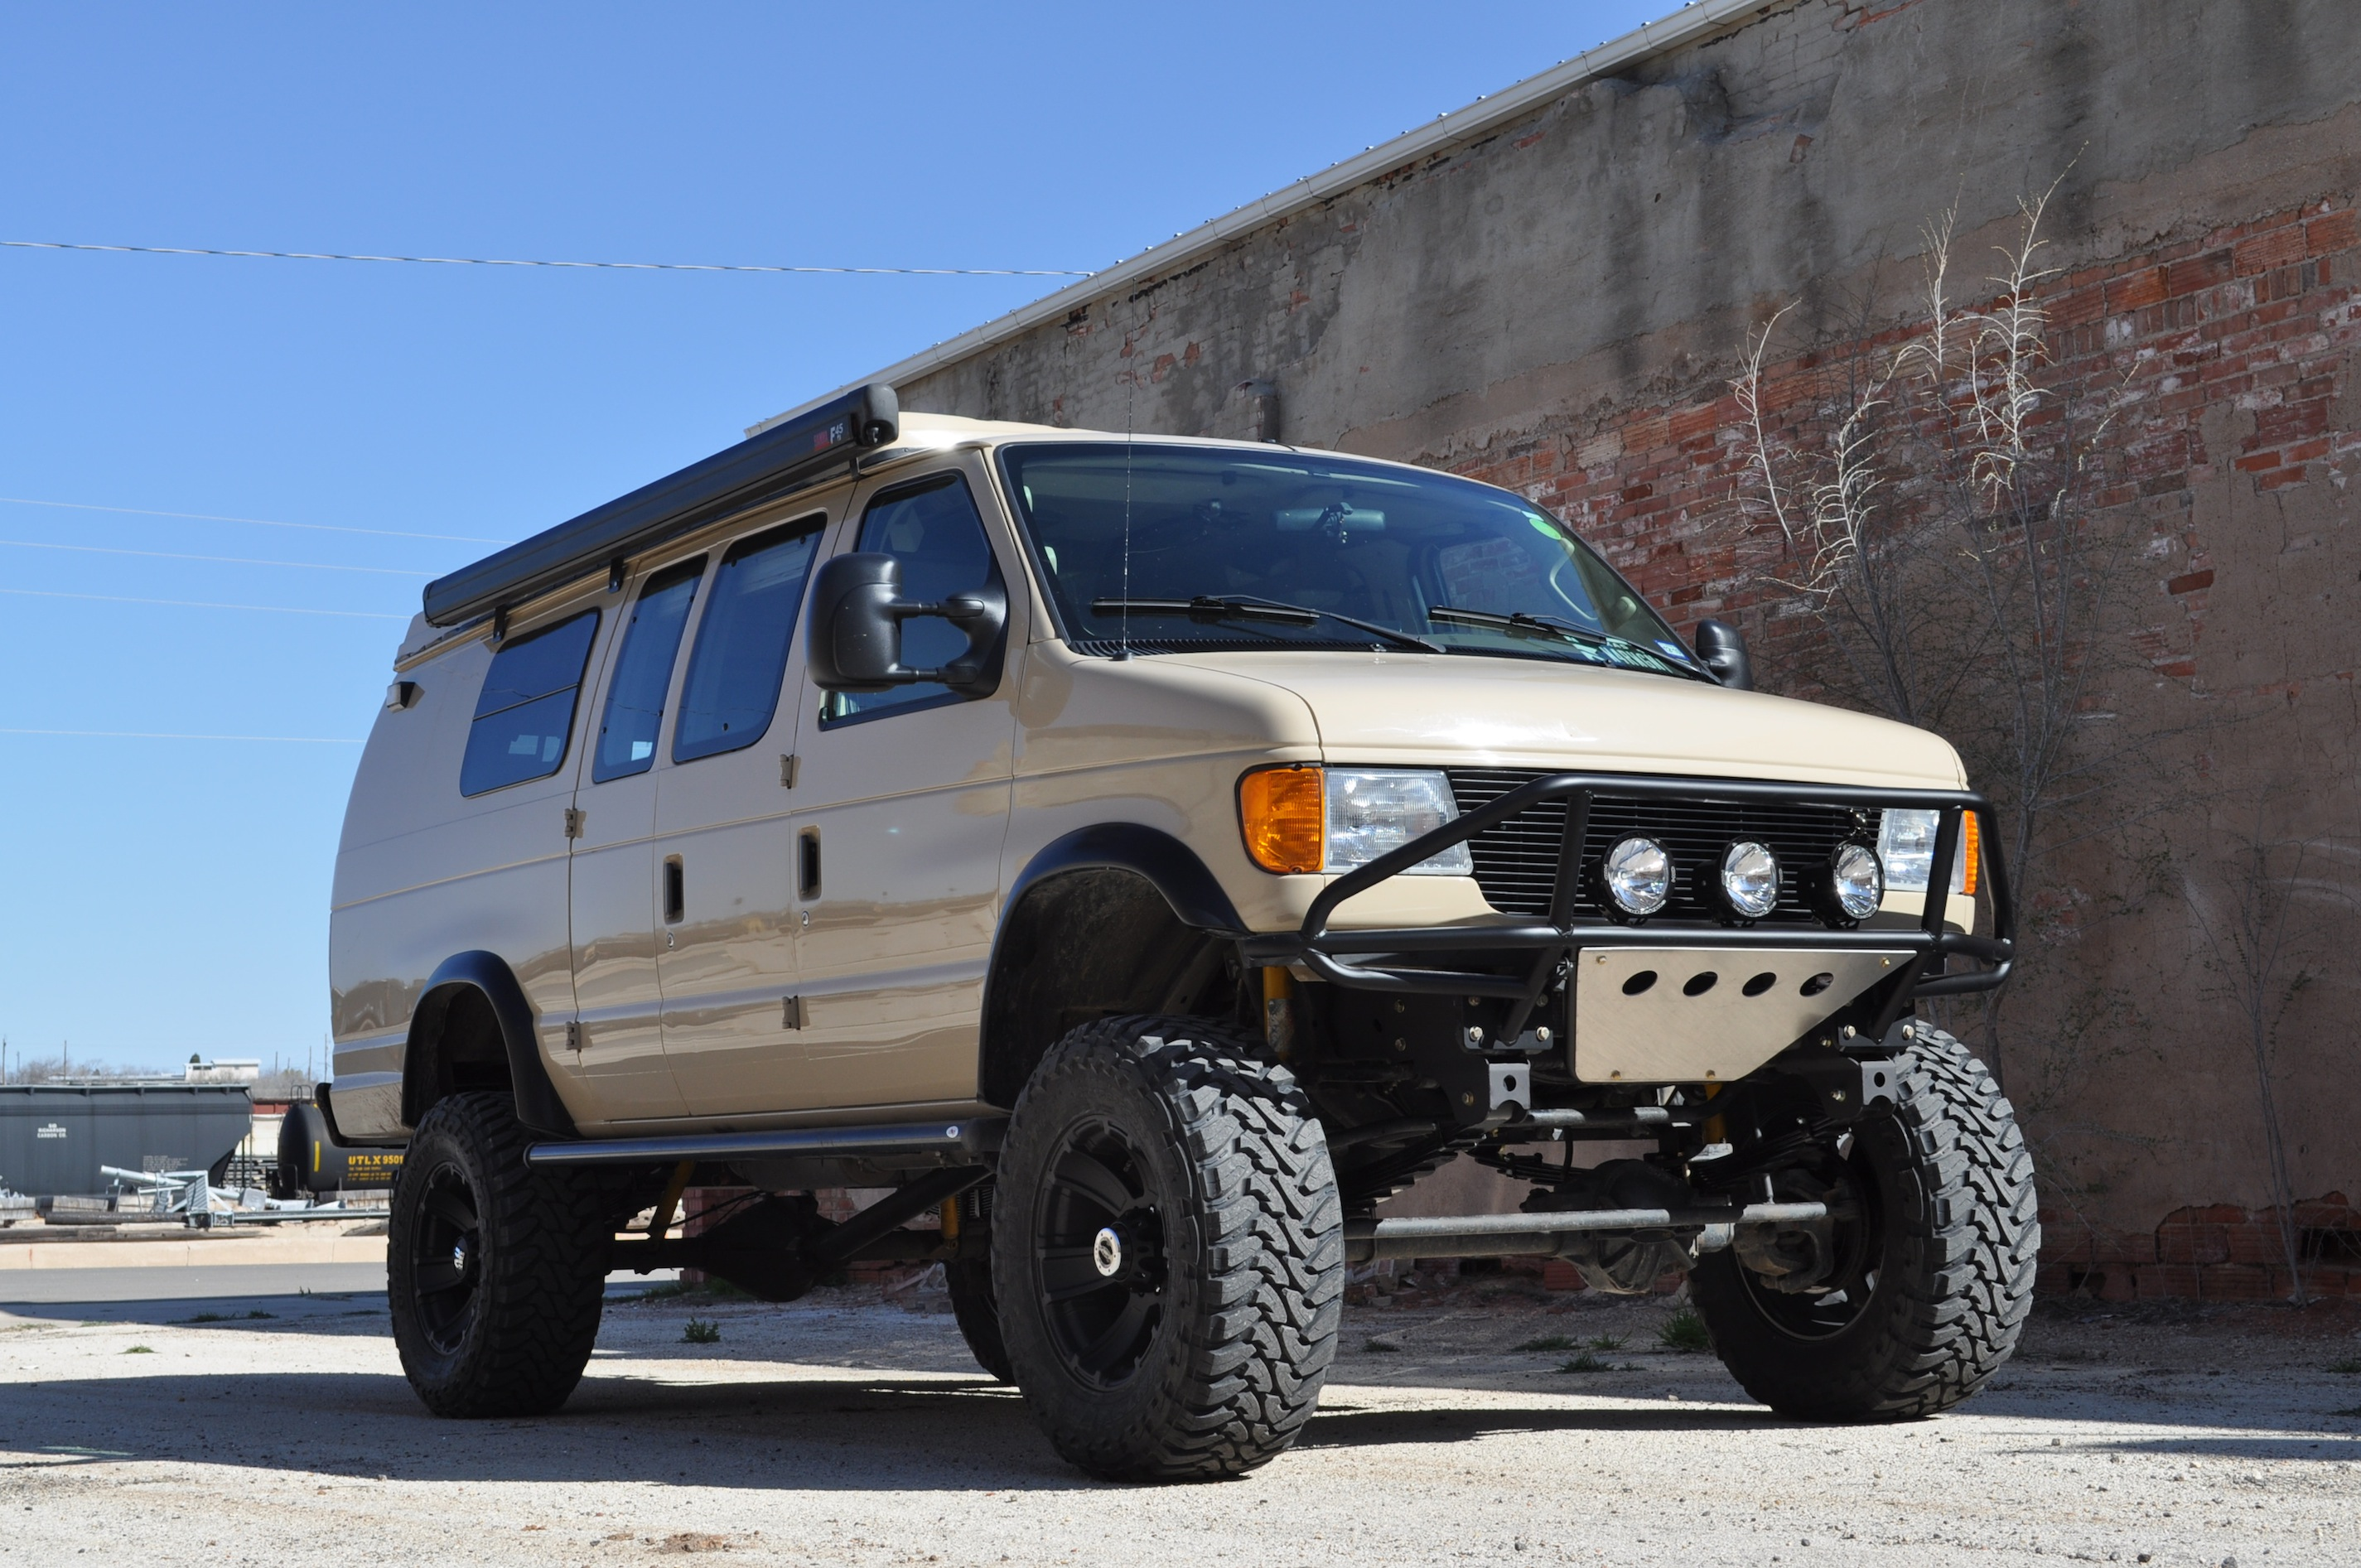 Dodge Conversion Van >> Sportsmobile 4x4 Vans Are All The Rage In Adventure Travel - The Drive